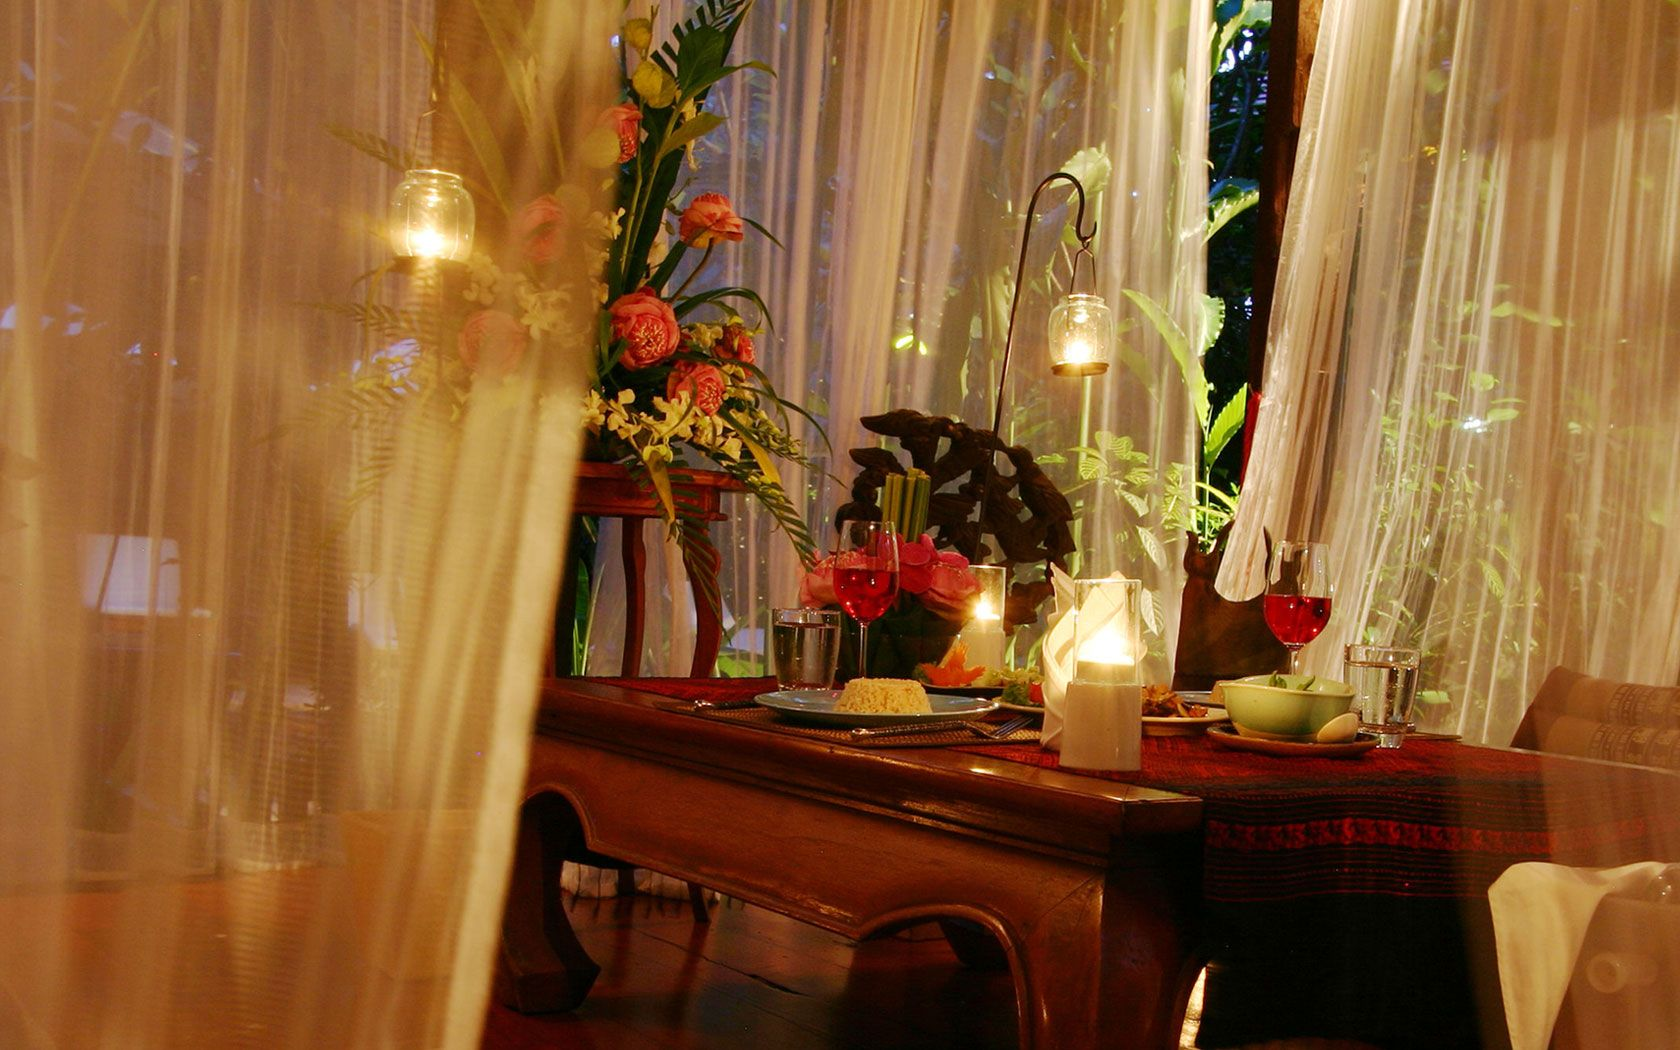 BEAUTIFUL CANDLE LIT DINNERS | Wild Orchid Restaurant Room Service Candle Light Dinner Villa Dining